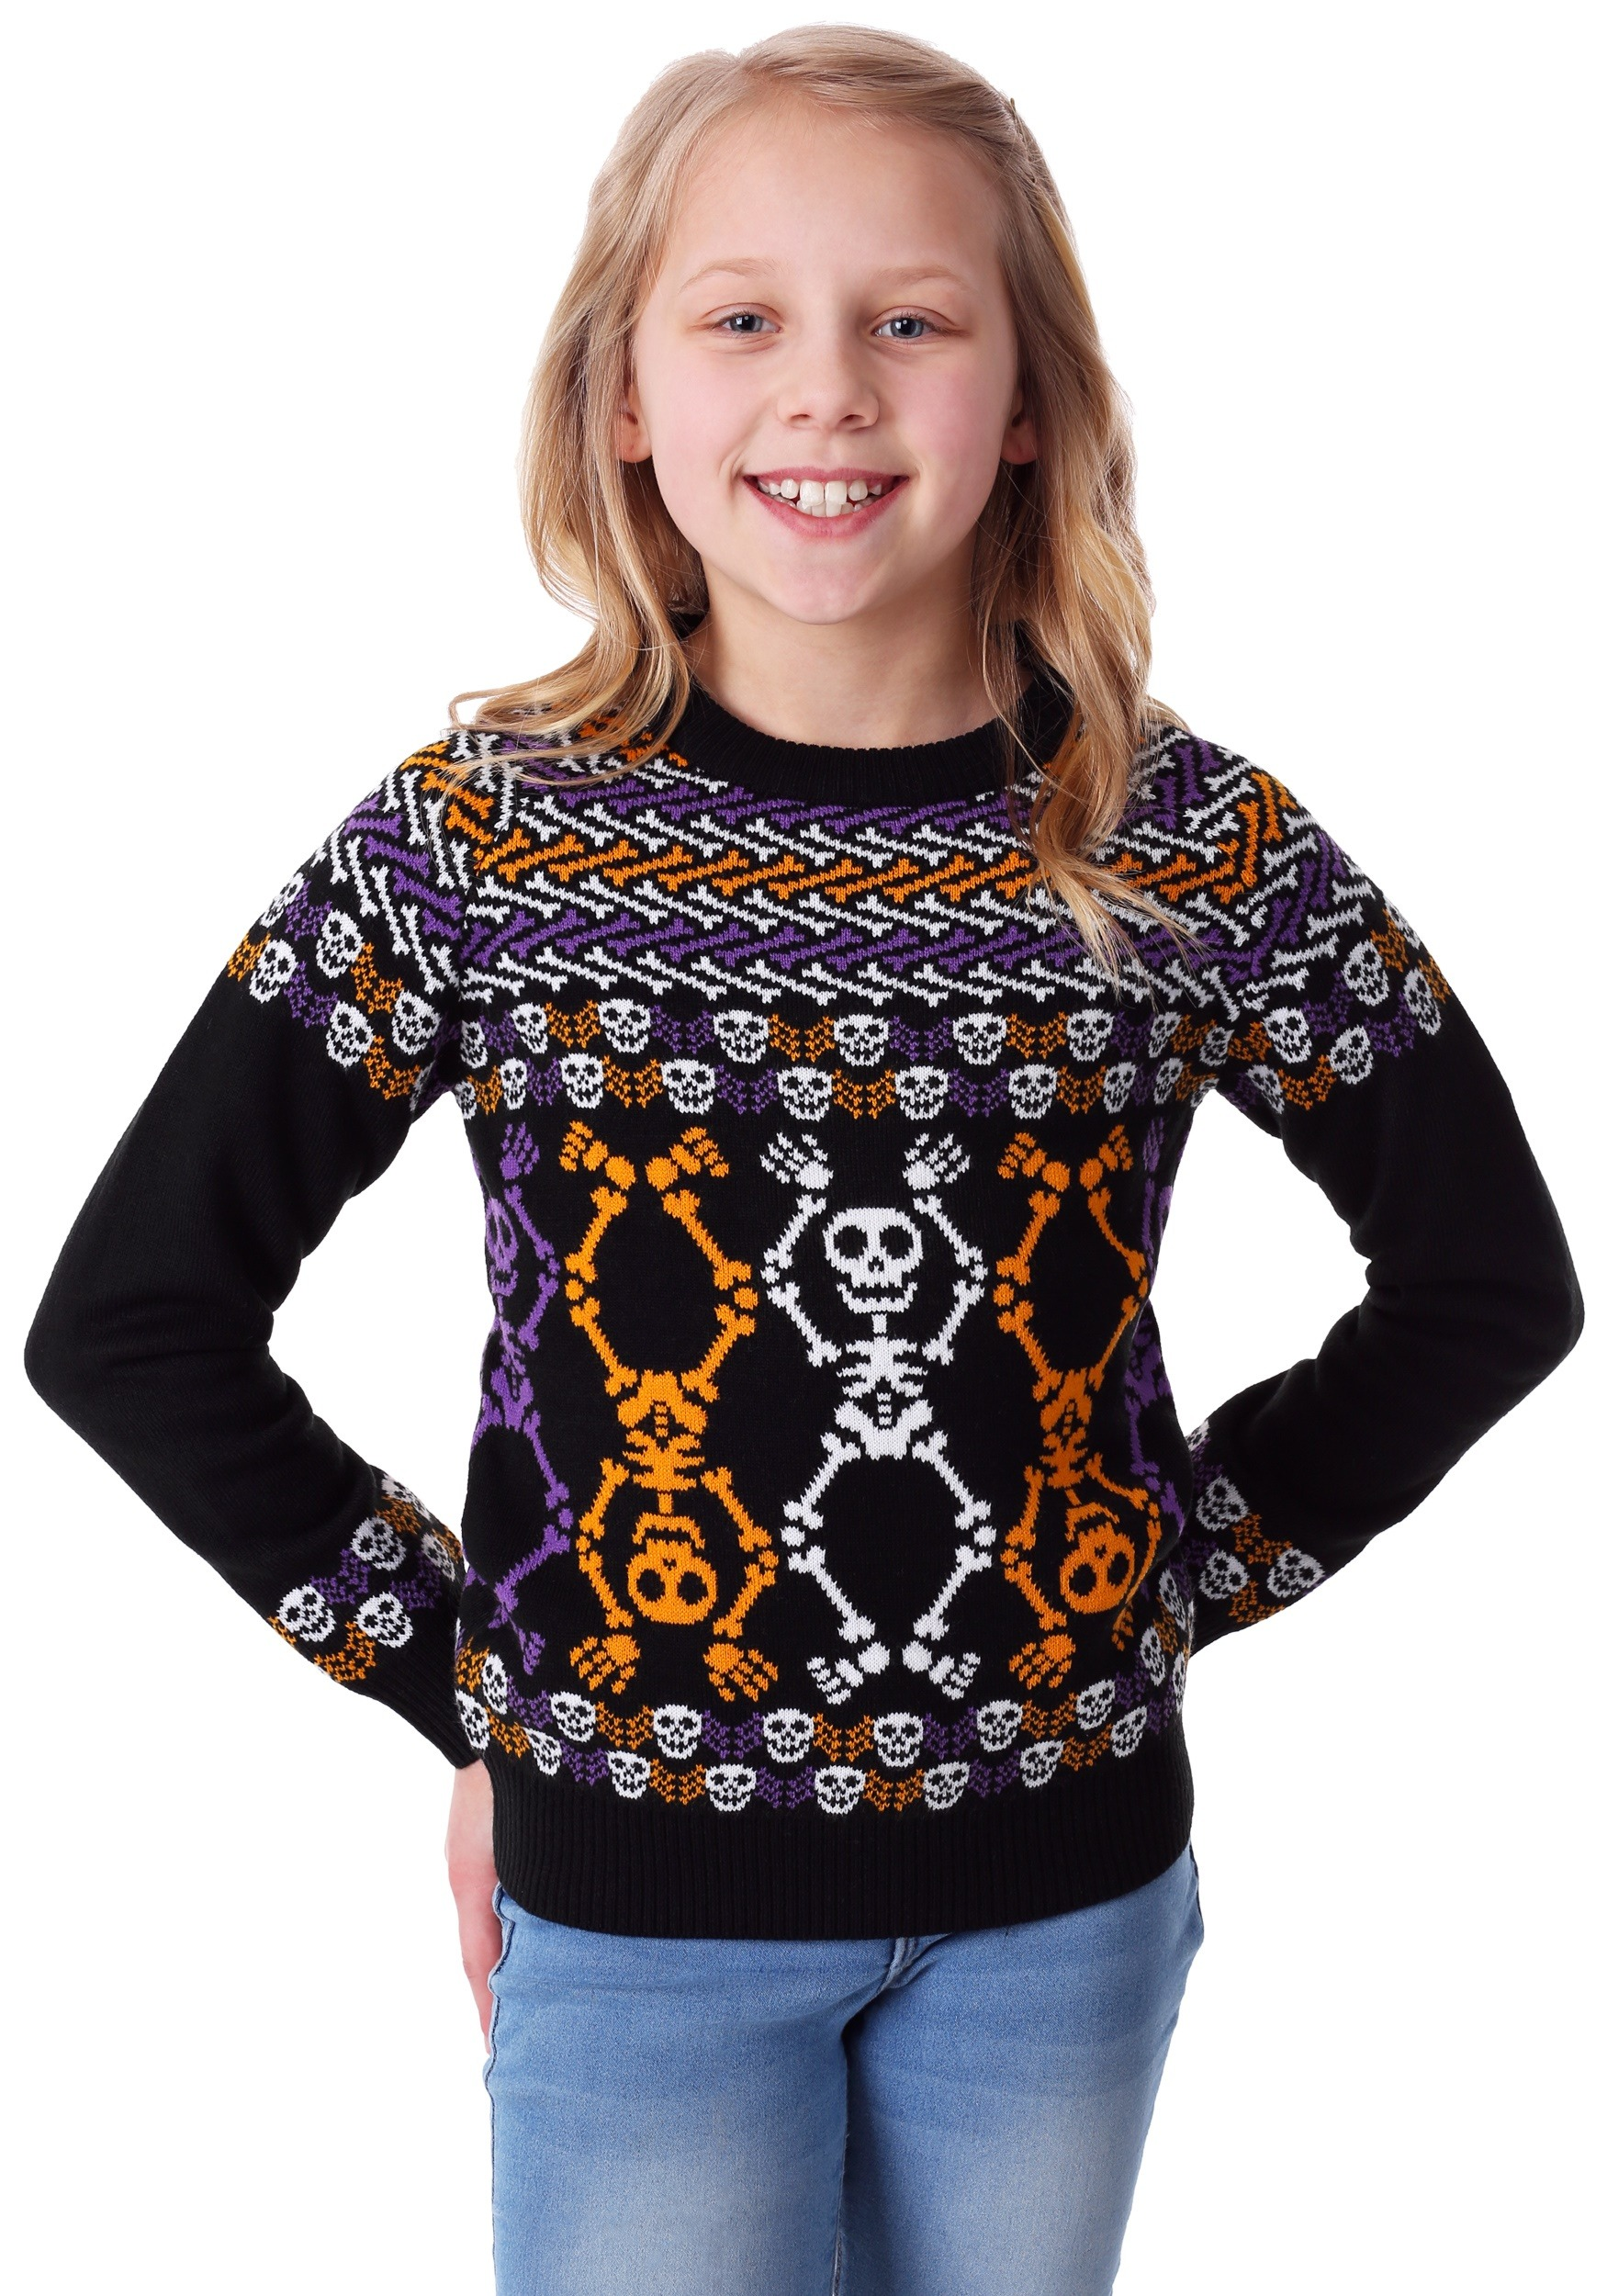 Kids Day of the Dead Dancing Skeletons Ugly Halloween Sweater